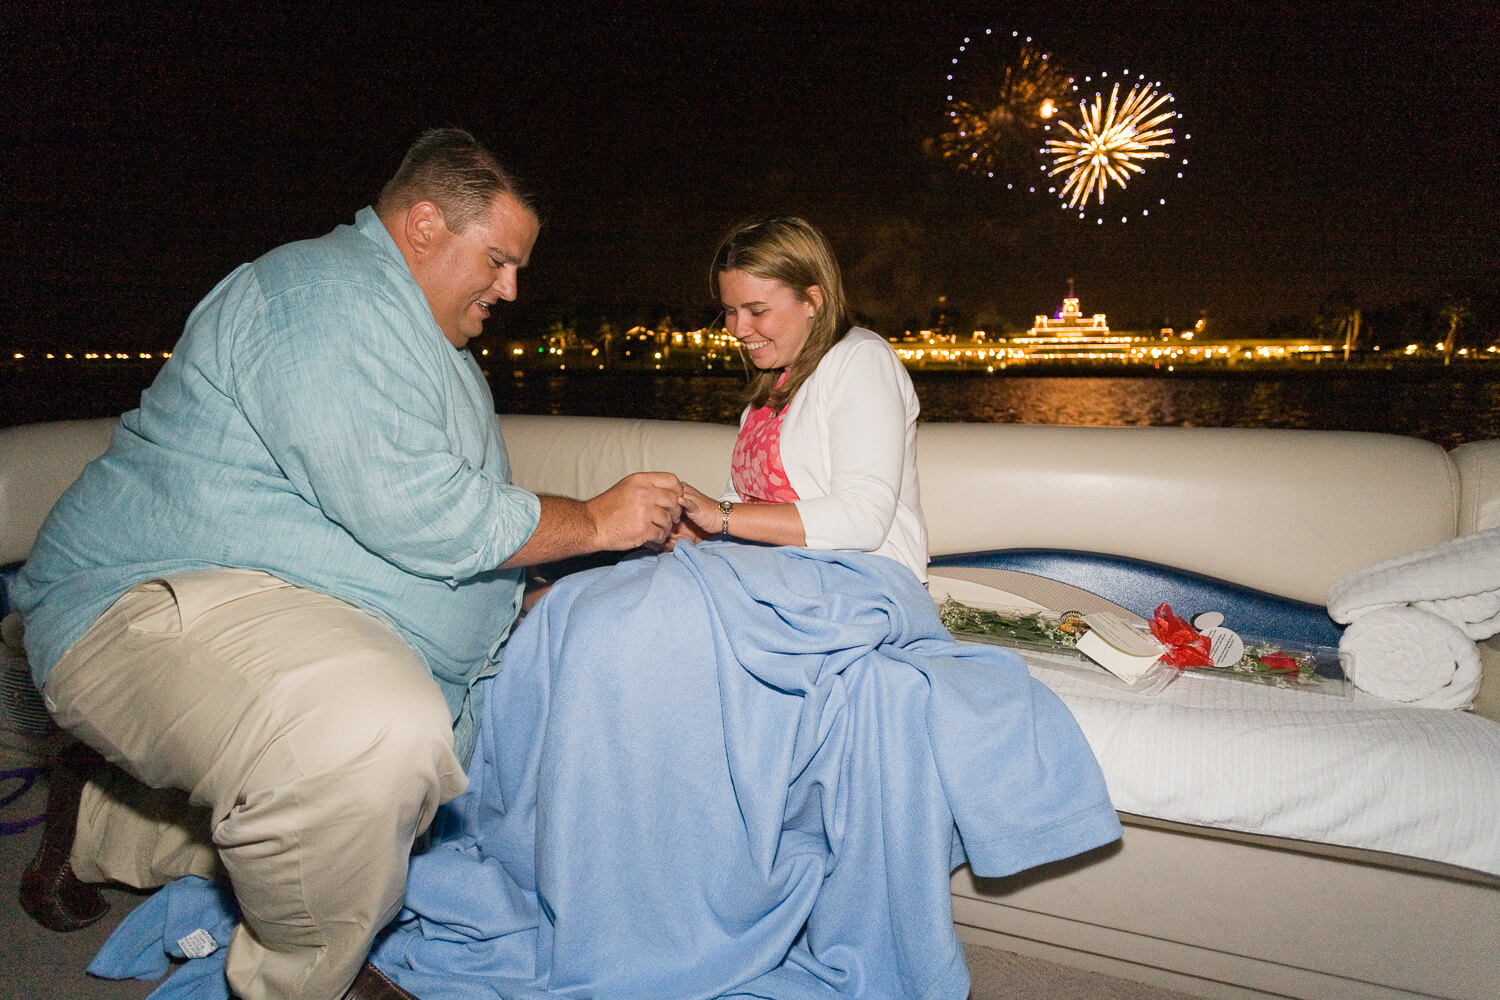 Orlando marriage proposal photography at Disney World